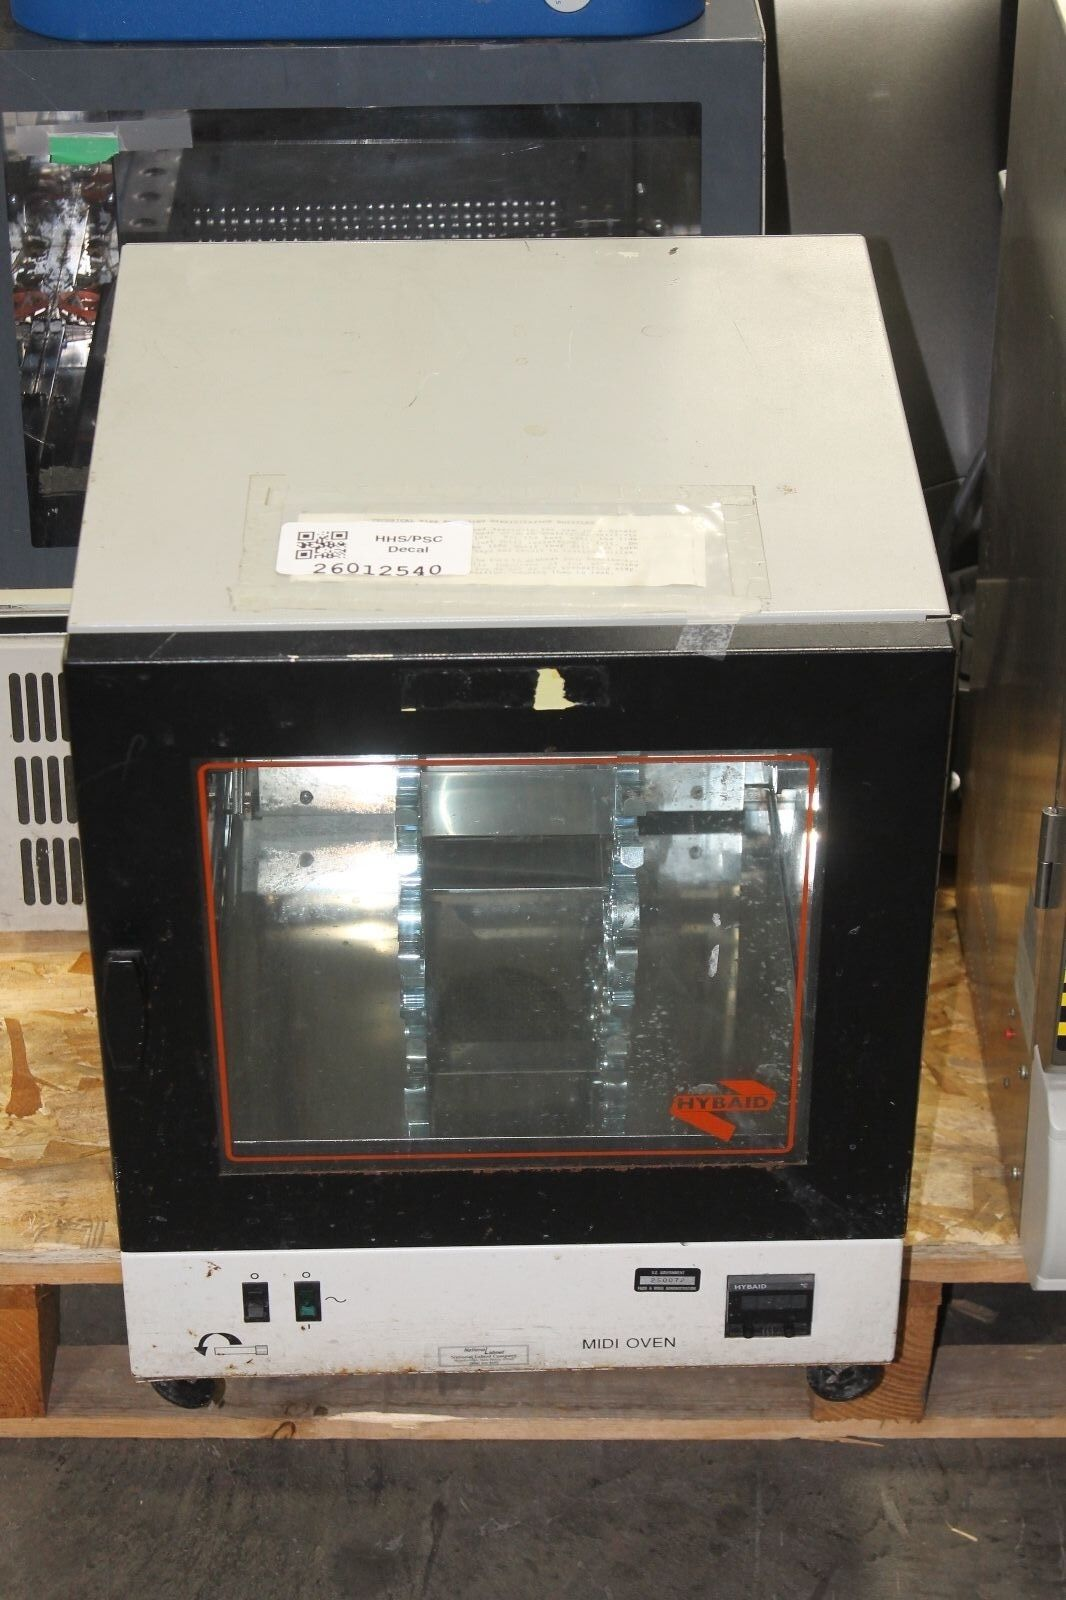 Oven Hybaid Mini Midi Working 19999 Picclick 15kw 30 80khz All Solid State Induction Heater Heating Melting Furnace 1 Of 1only Available